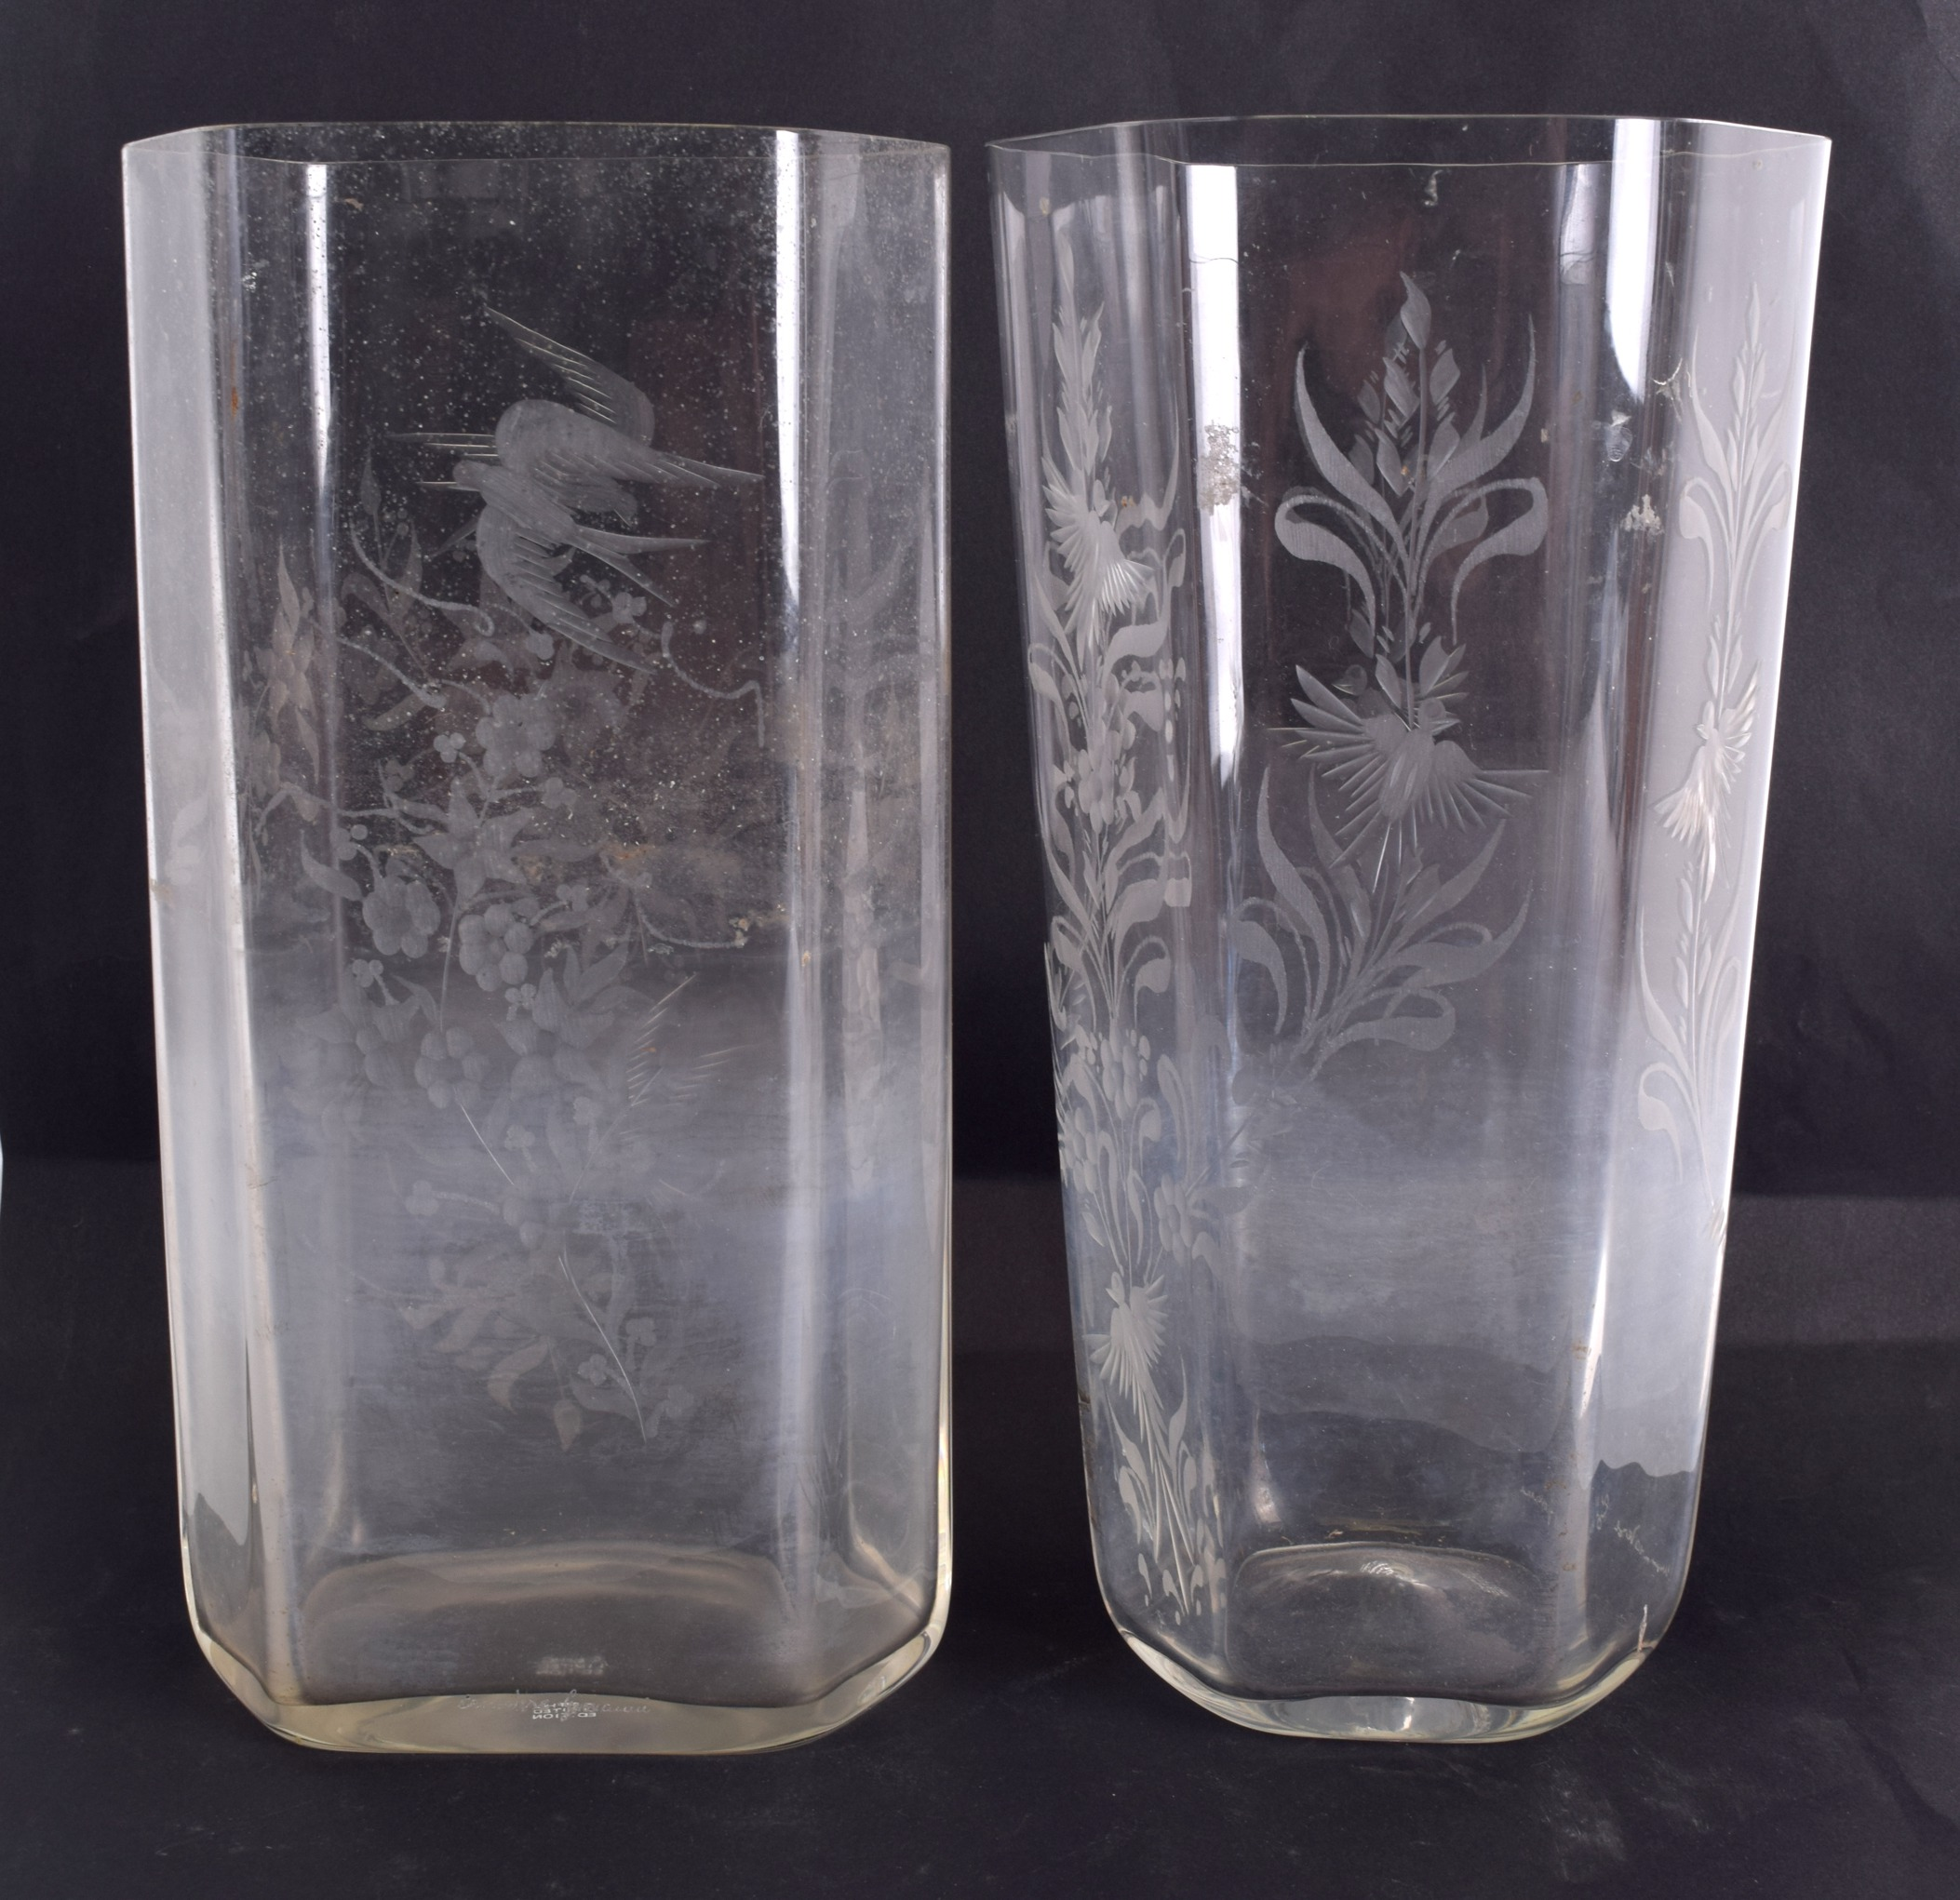 Lot 25 - TWO LIMITED EDITION ETCHED GLASS VASES decorated with birds and foliage. 27 cm & 26 cm high. (2)